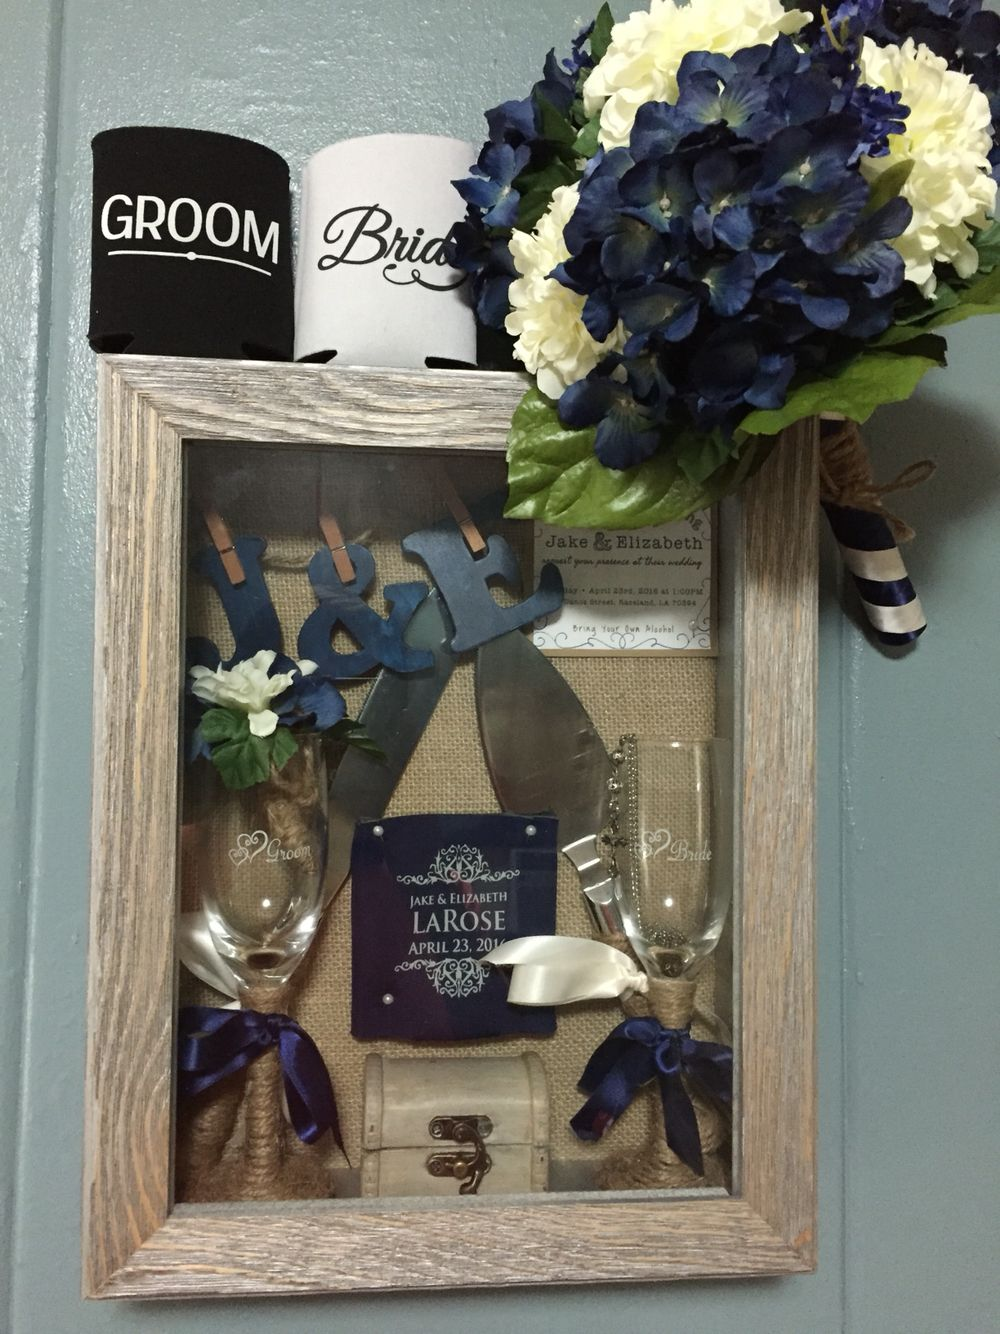 Wedding Shadow Box Idea I Got The Shadow Box From Hobby Lobby Which I Lucked Up Hit T Wedding Shadow Box Hobby Lobby Wedding Invitations Bouquet Shadow Box